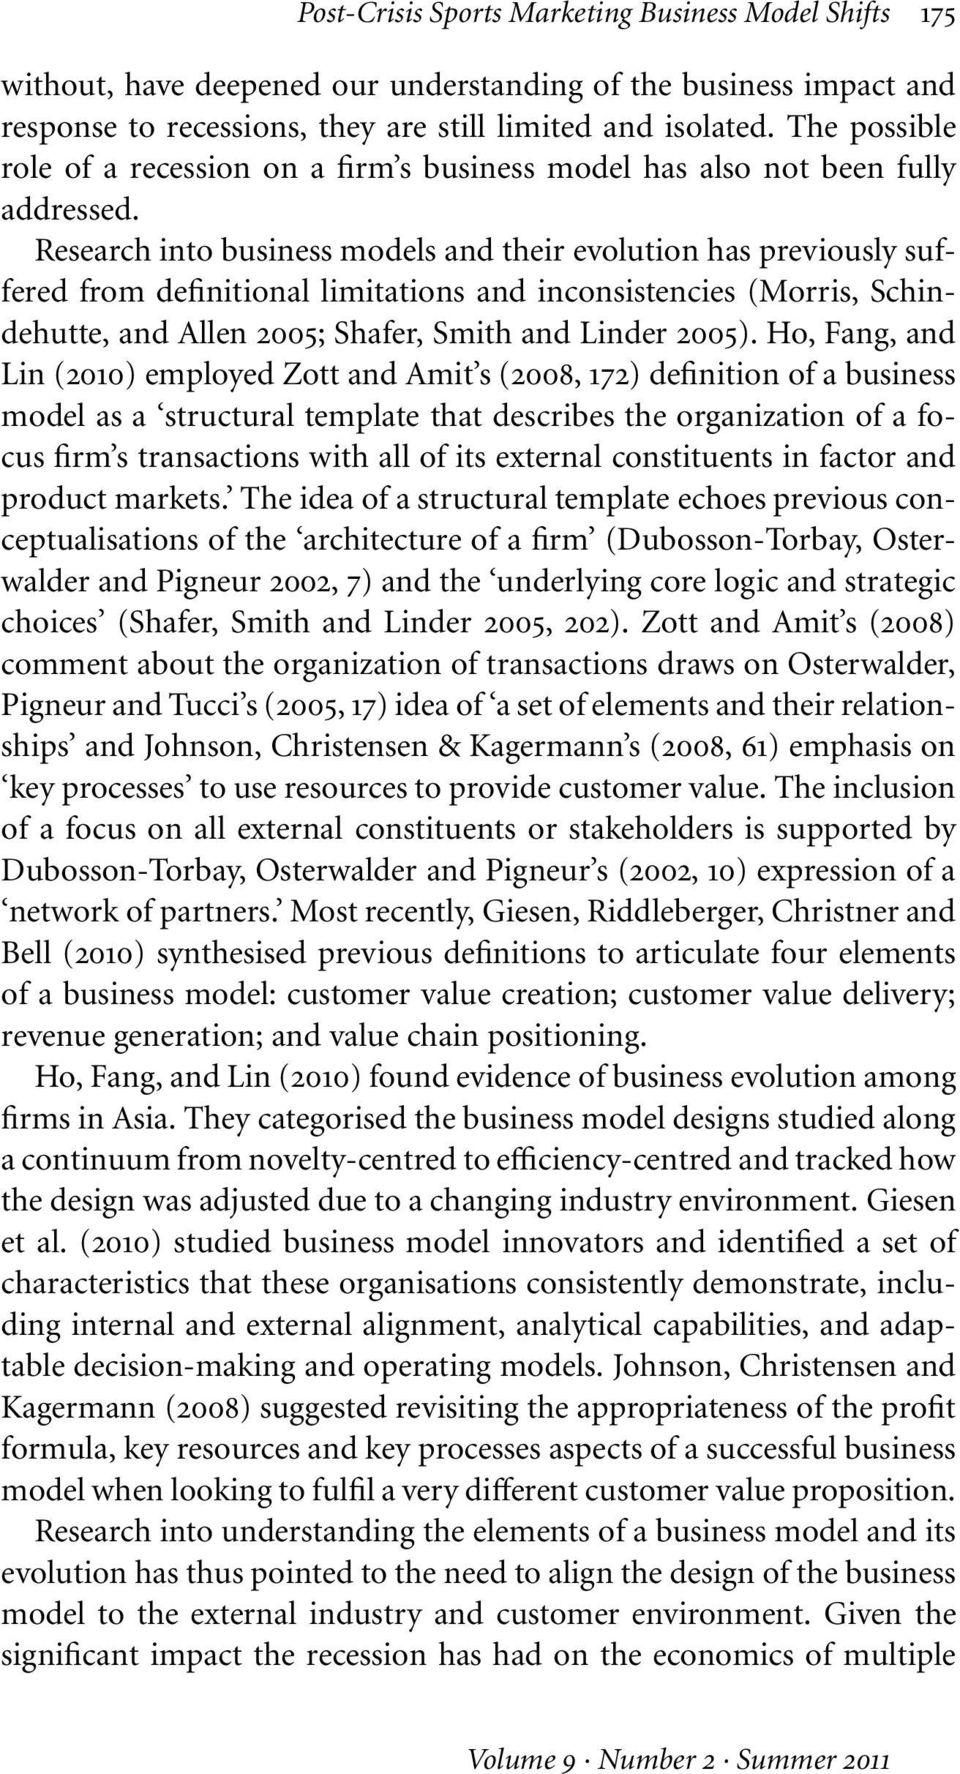 Research into business models and their evolution has previously suffered from definitional limitations and inconsistencies (Morris, Schindehutte, and Allen 2005; Shafer, Smith and Linder 2005).